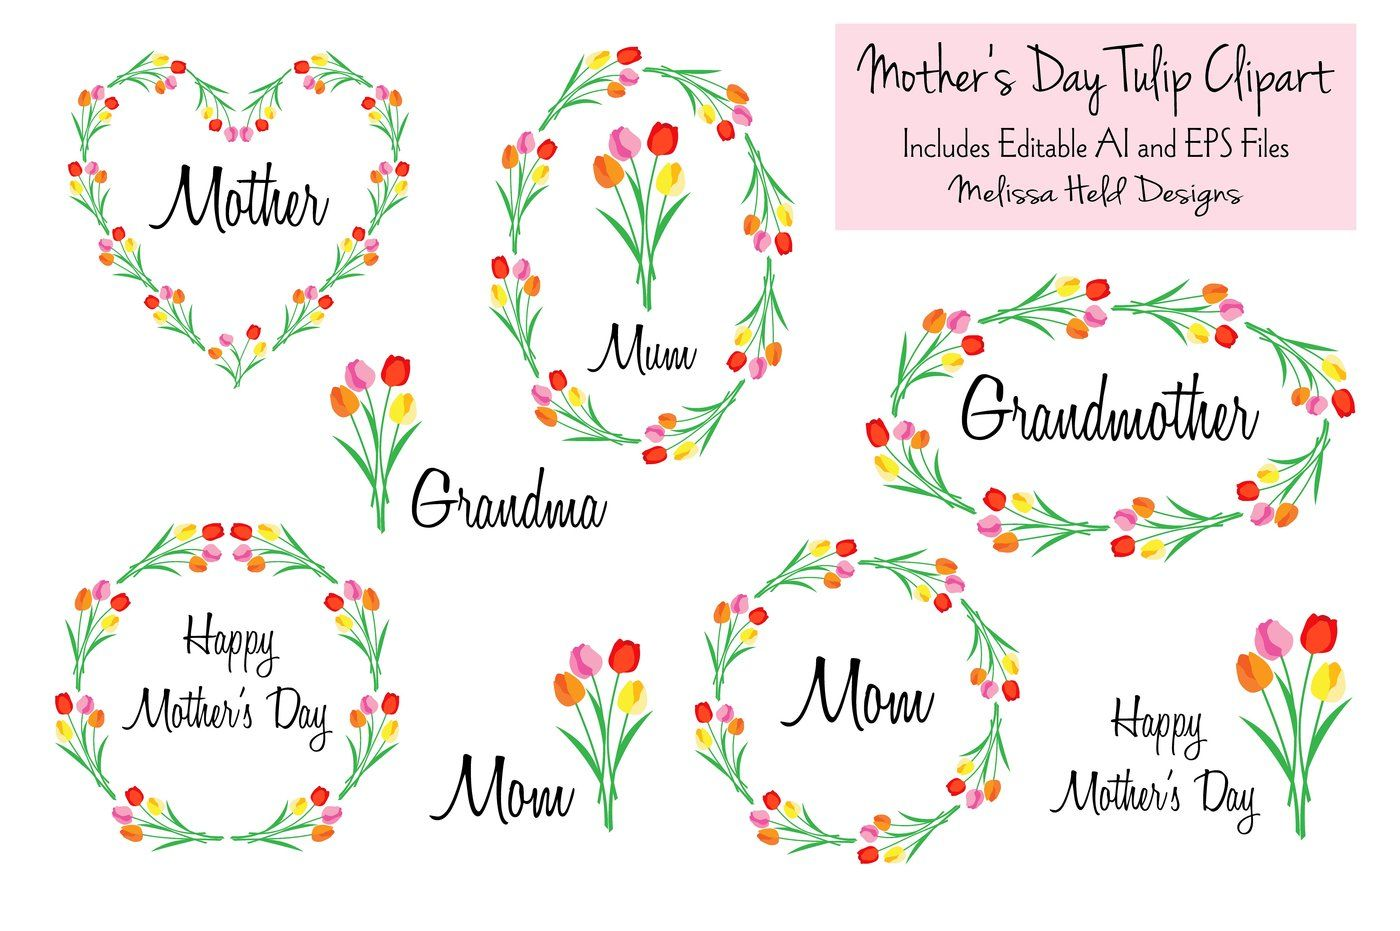 Mother S Day Tulip Clipart By Melissa Held Designs Thehungryjpeg Com